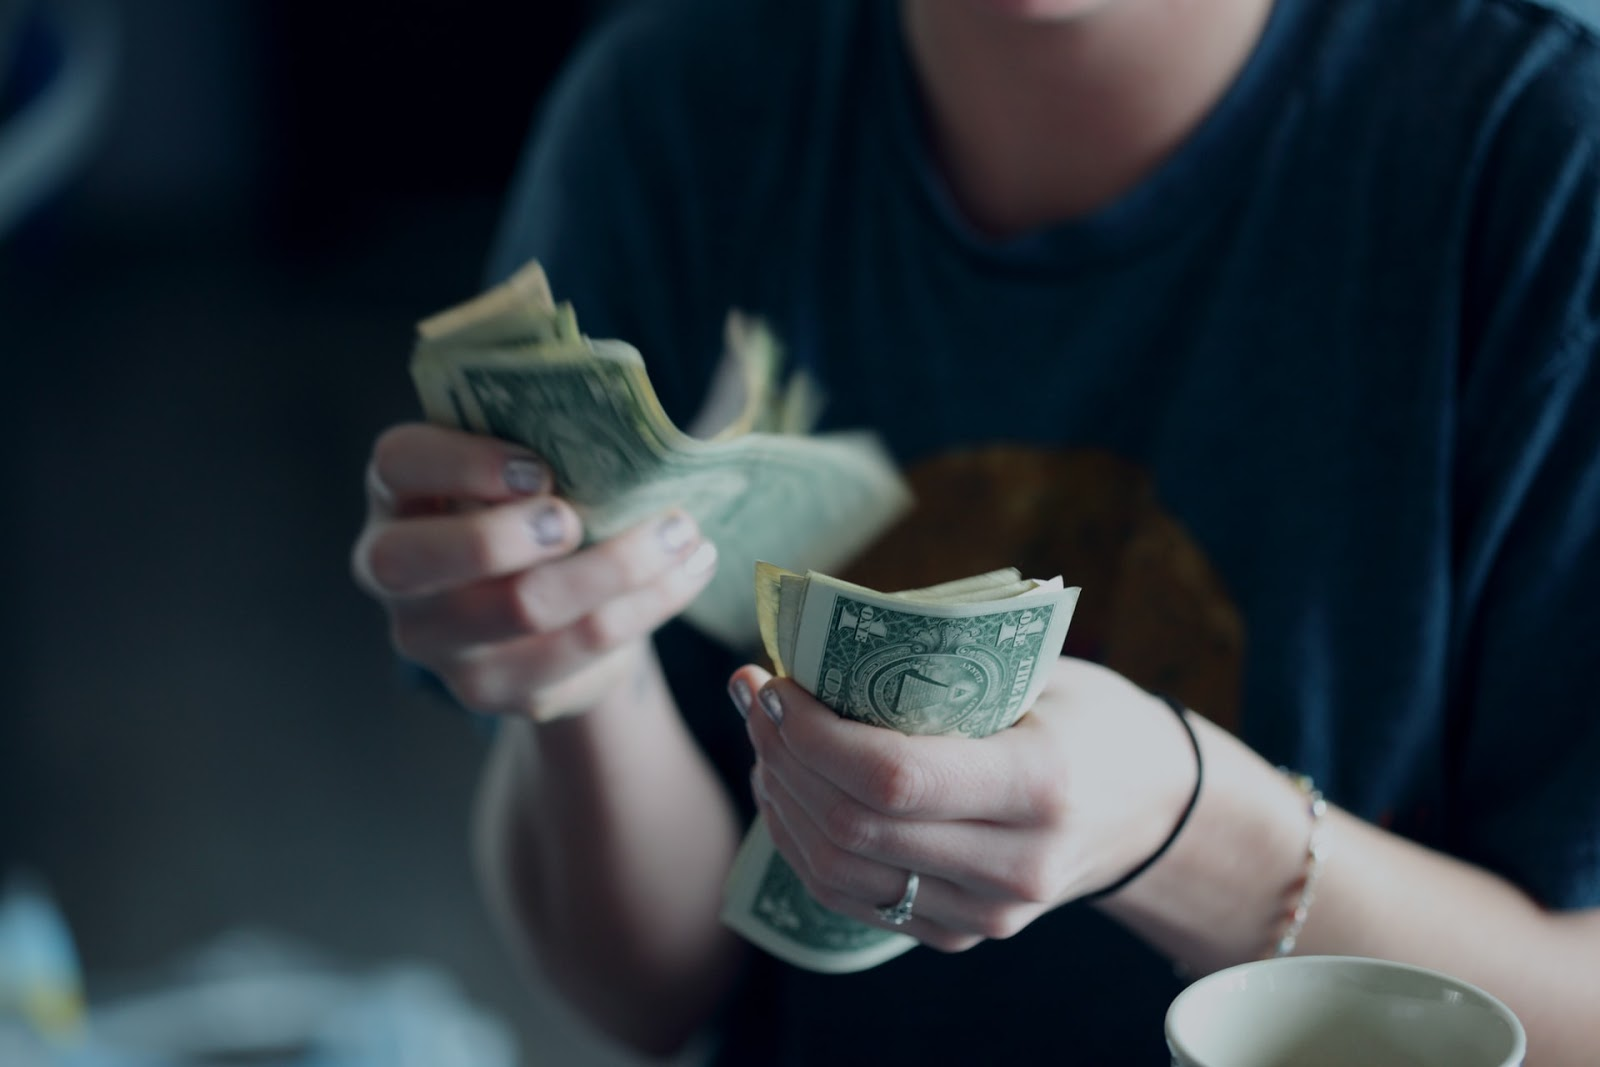 A person counting money.